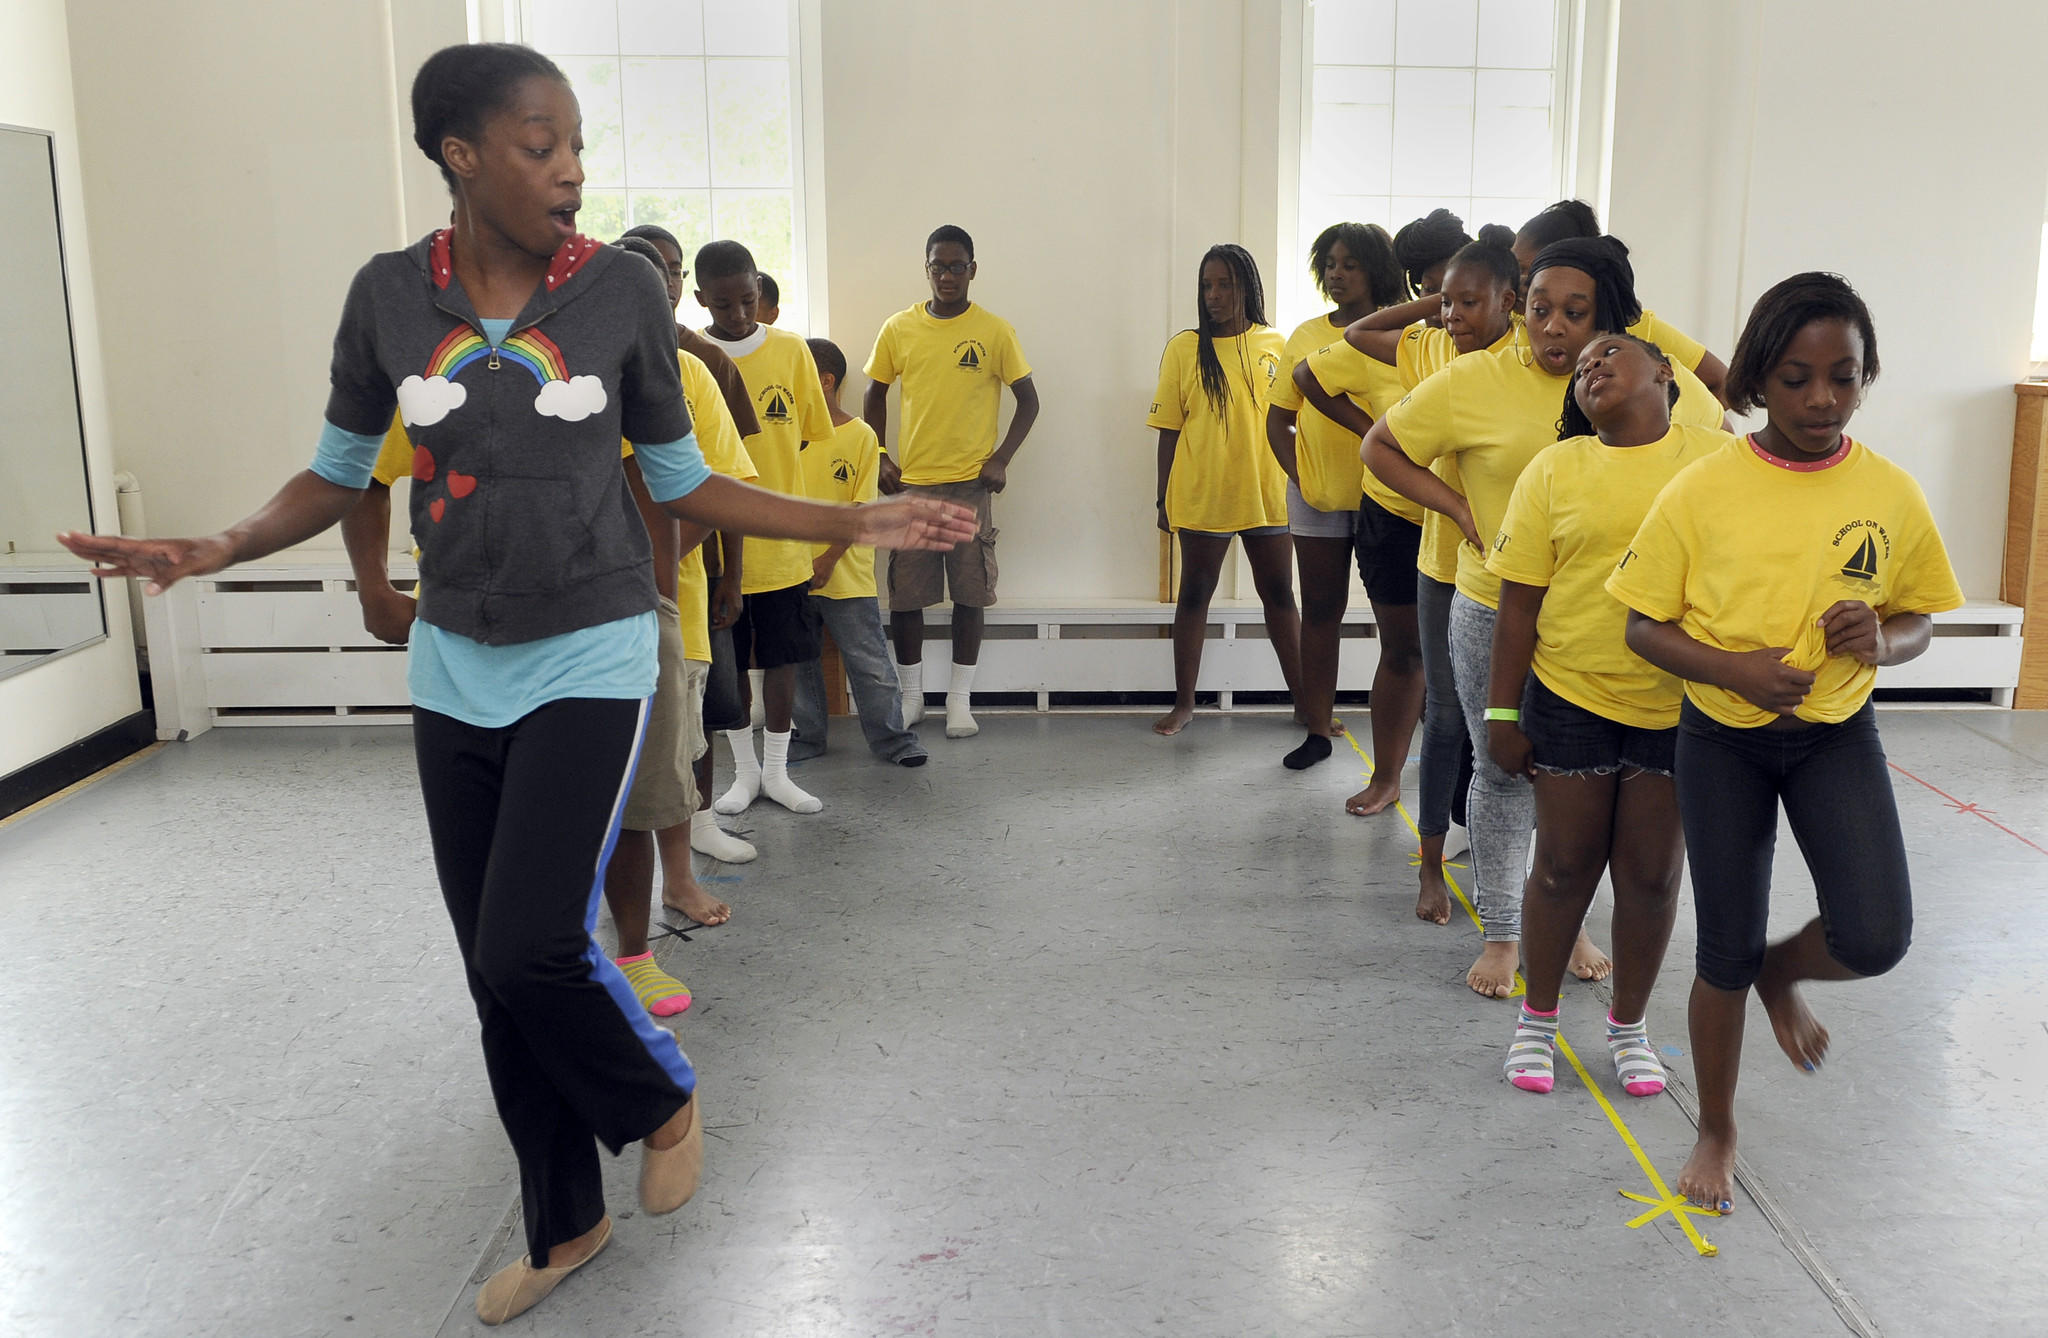 Children take a dance class at Maryland Hall as part of Artreach and the We Care and Friends program. The dance instructor is Kamaria Boyd, a visiting teacher from Dance Baltimore. Here, she leads them in a dance step.